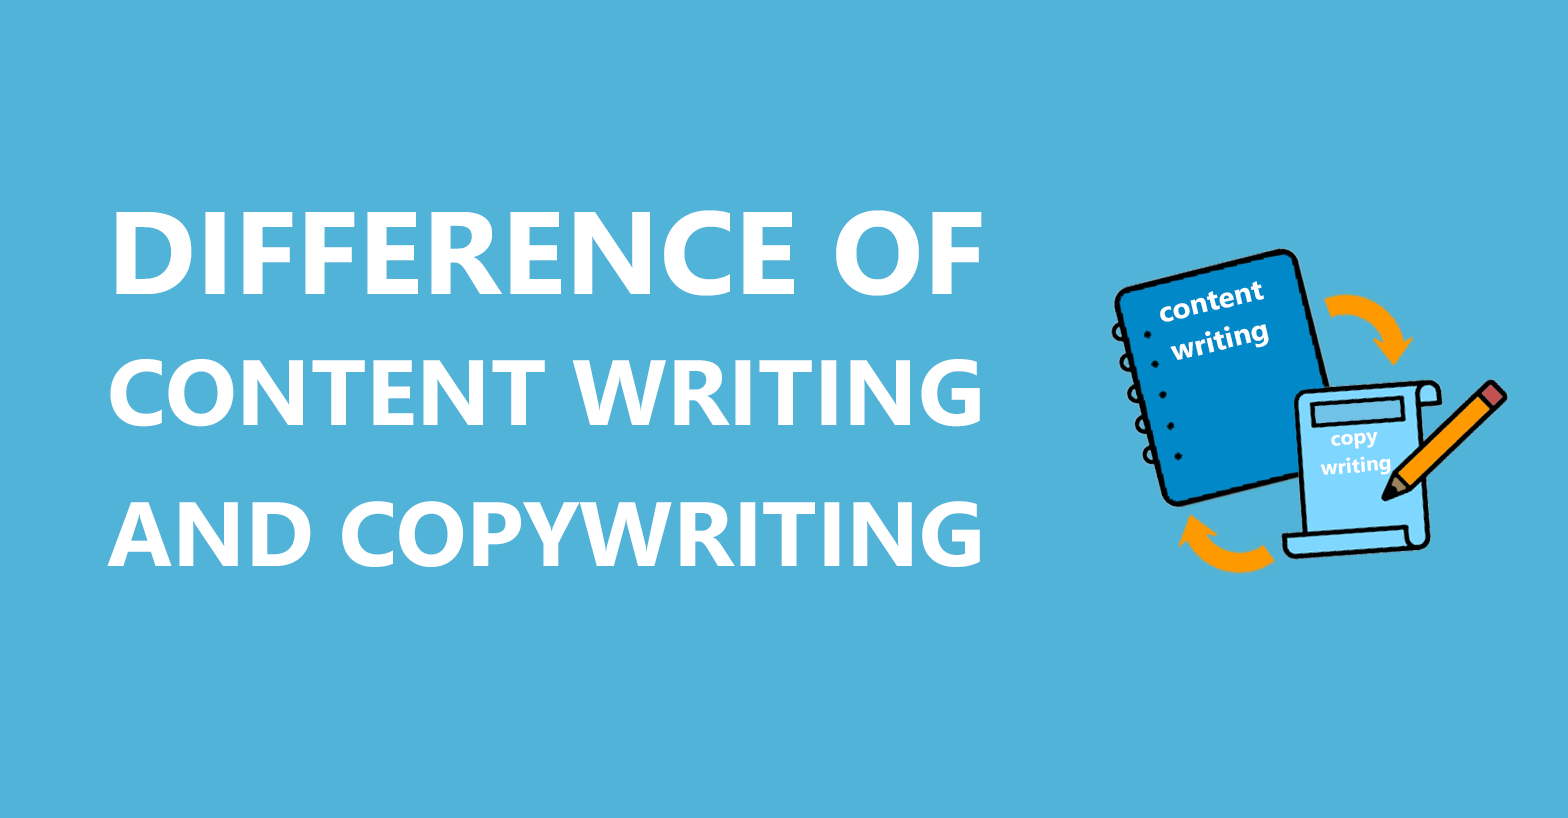 Content Writing Vs Copywriting: Is There A Difference?